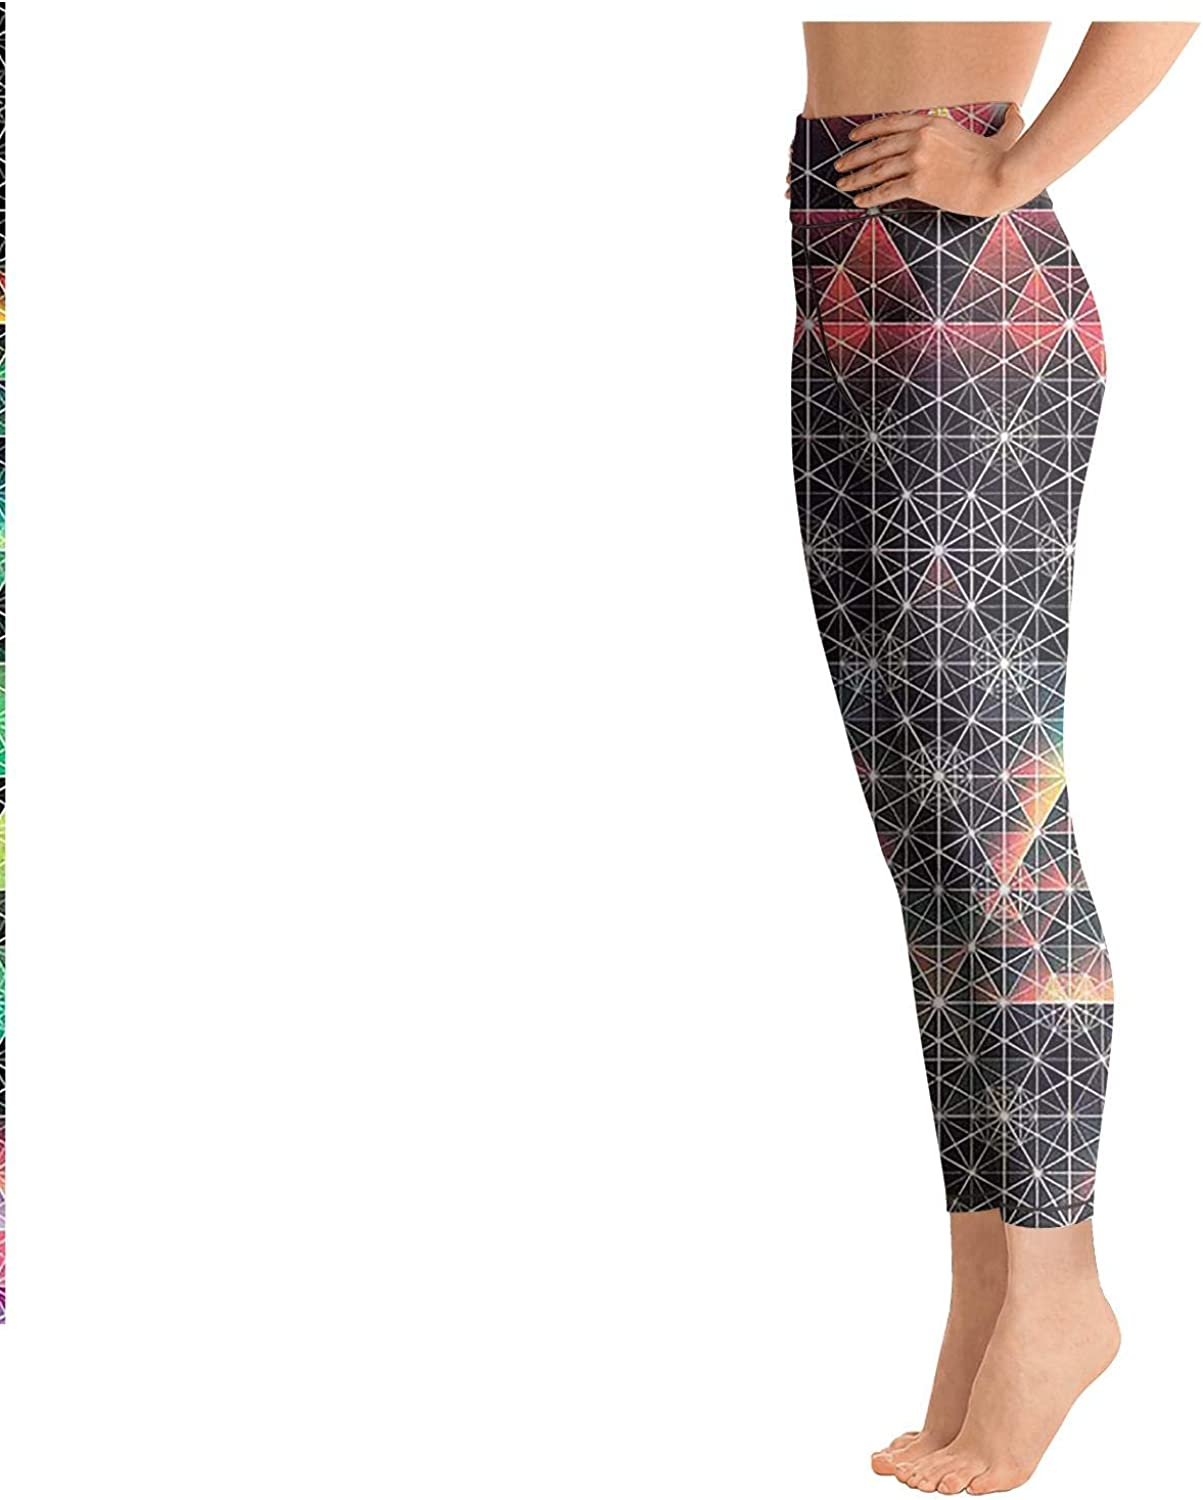 Young Women High Waisted Yoga Pants Colorful Trippy Art Worlds Comfort Fancy Jogging Home Pants